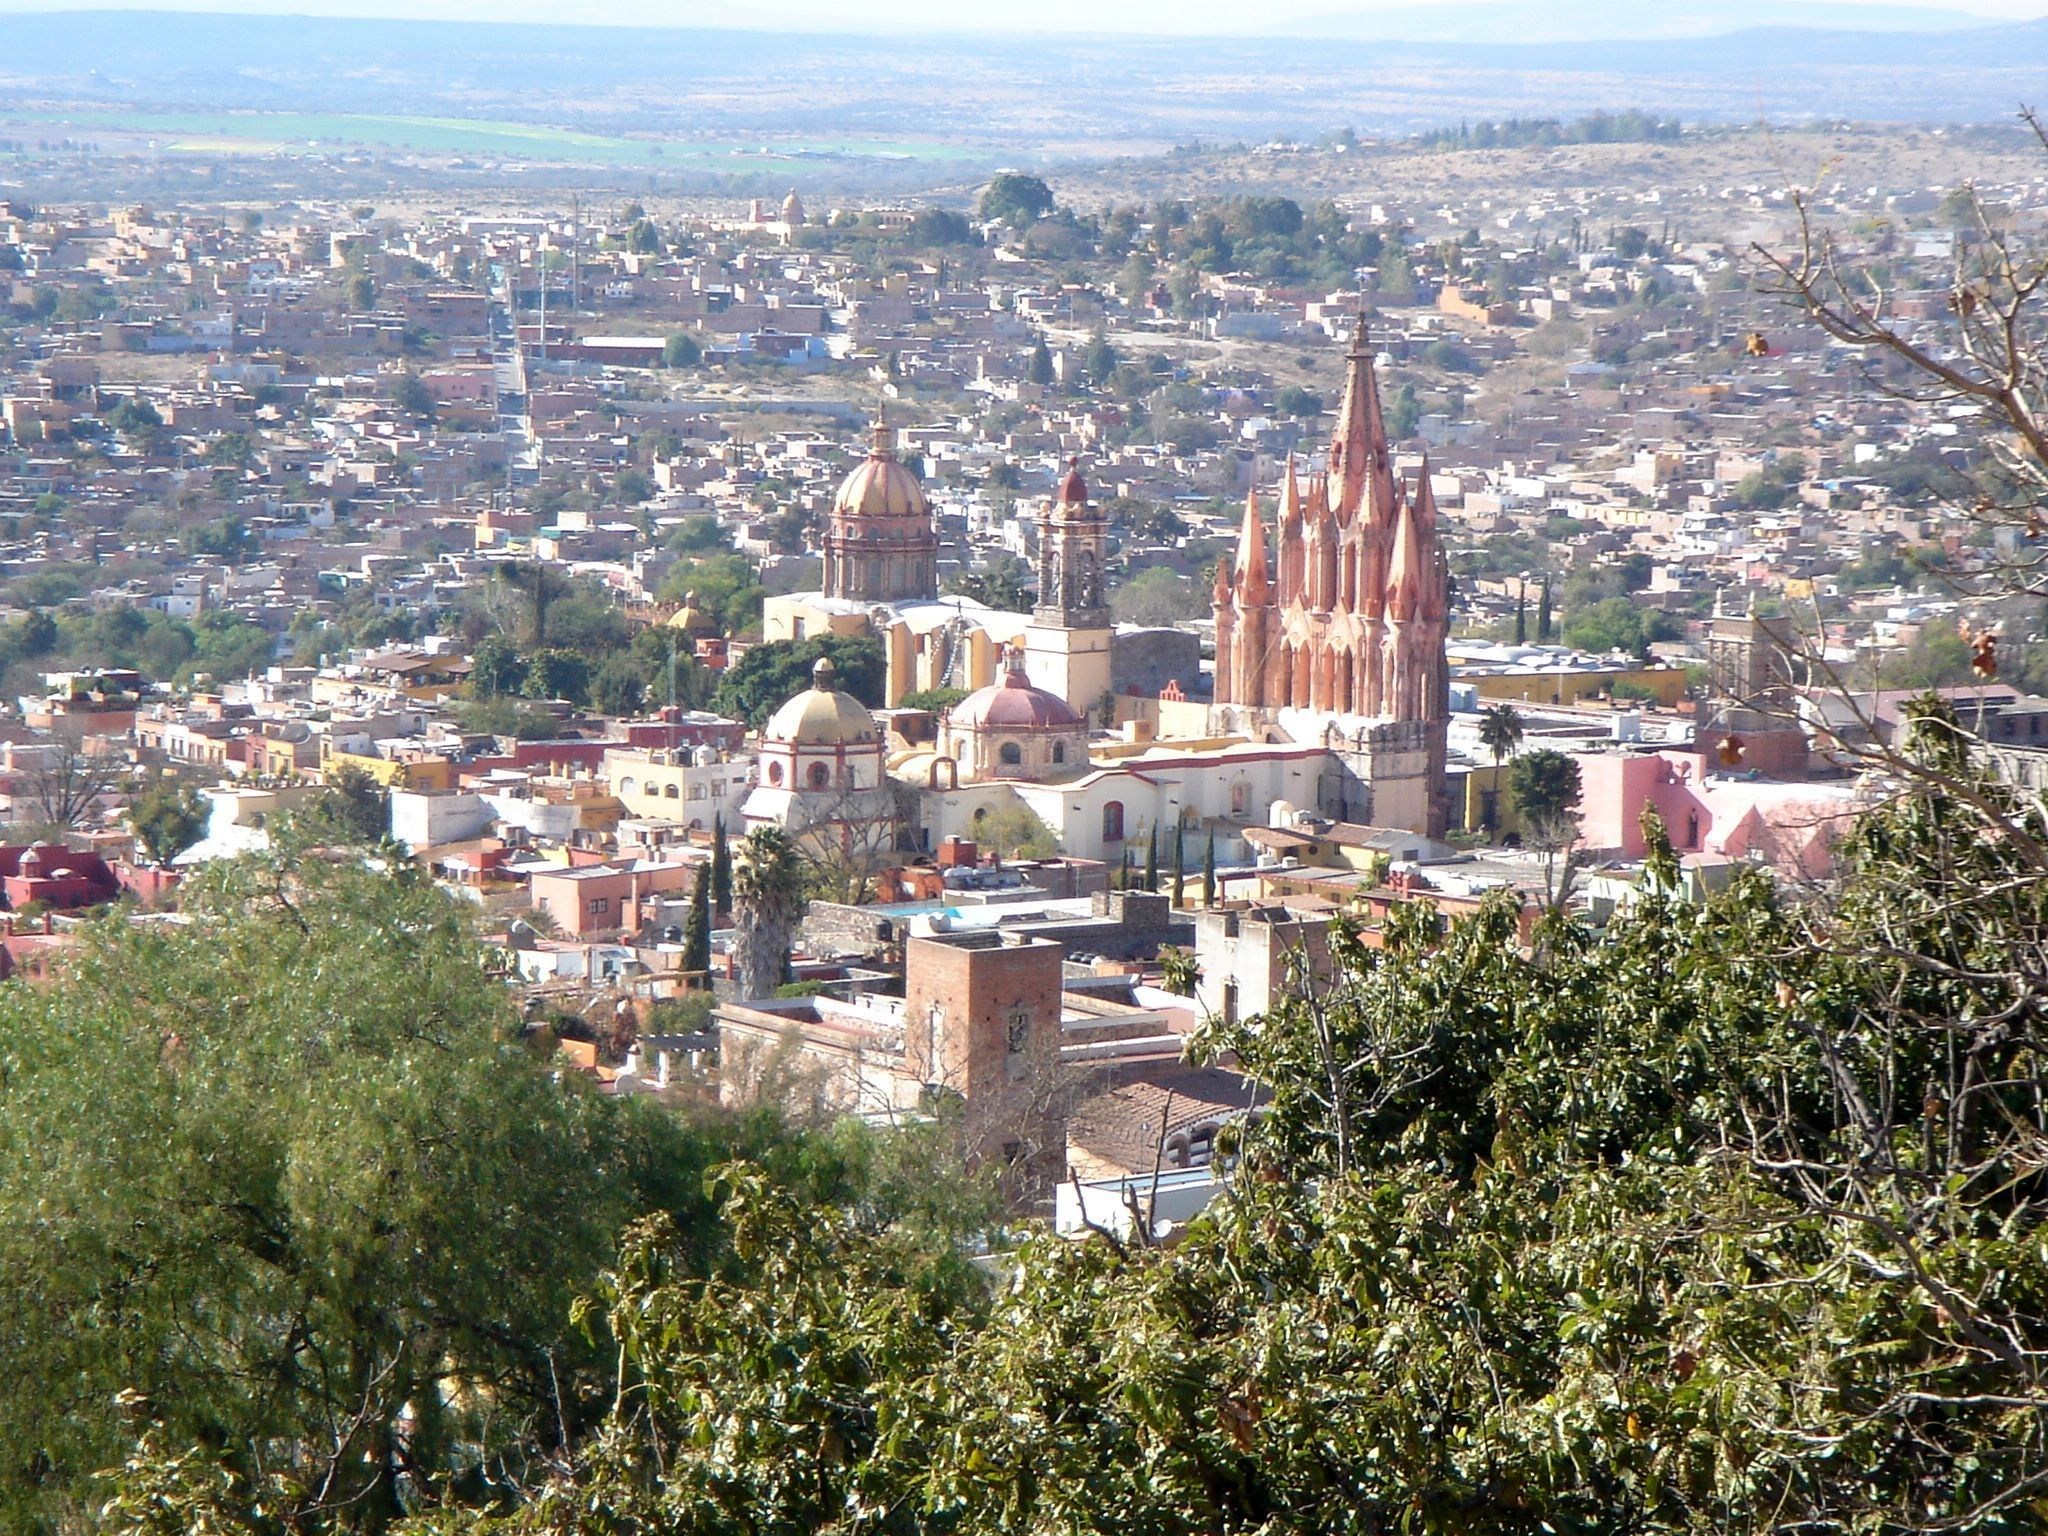 San Miguel de Allende, Mexico, Winter 2008